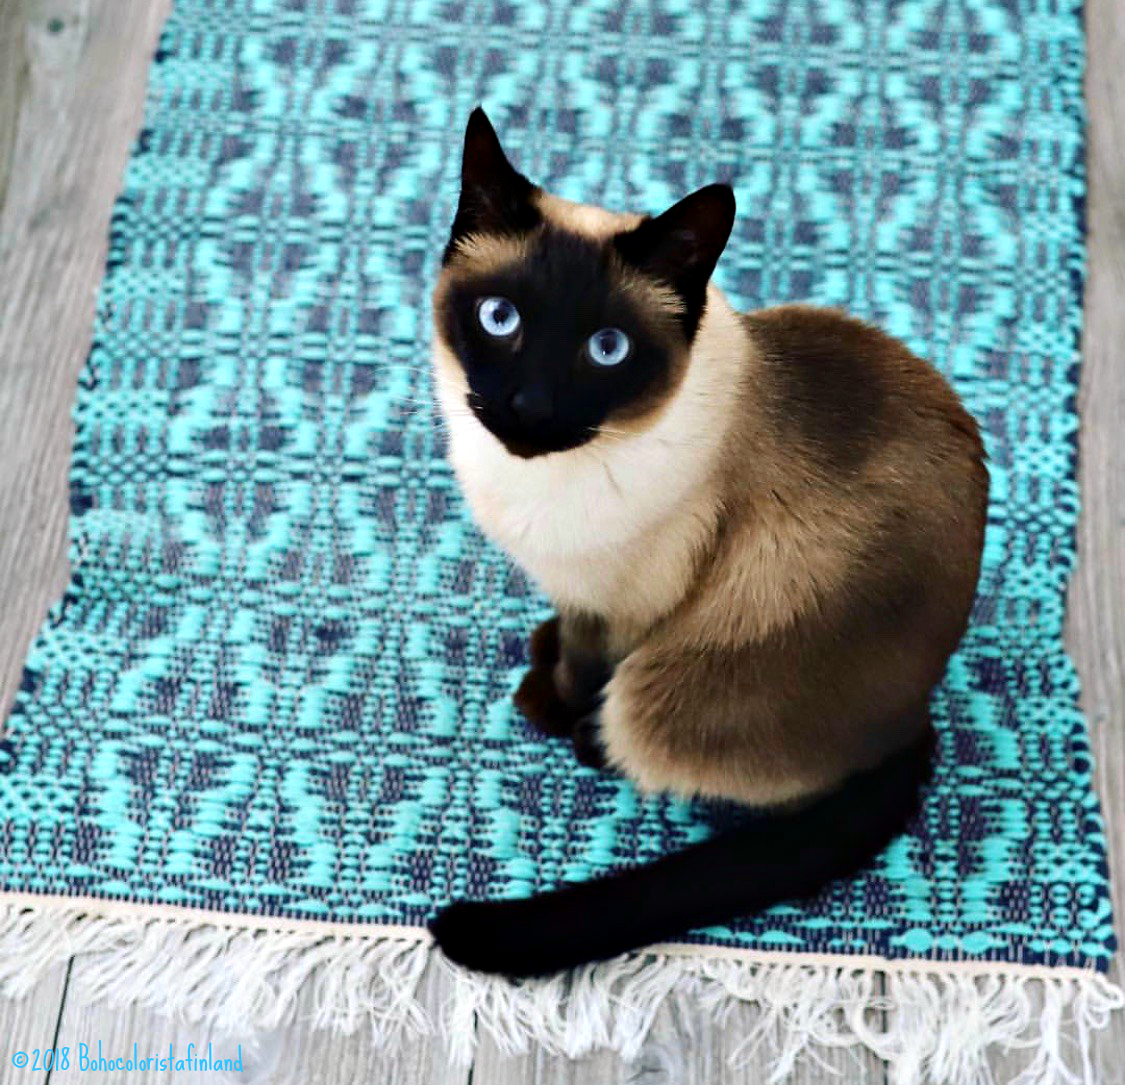 Blue Eyes | Siamese Cat on Blue Rug | Instagram Inspiration That Stopped My Scroll | www.sandykayemoss.com